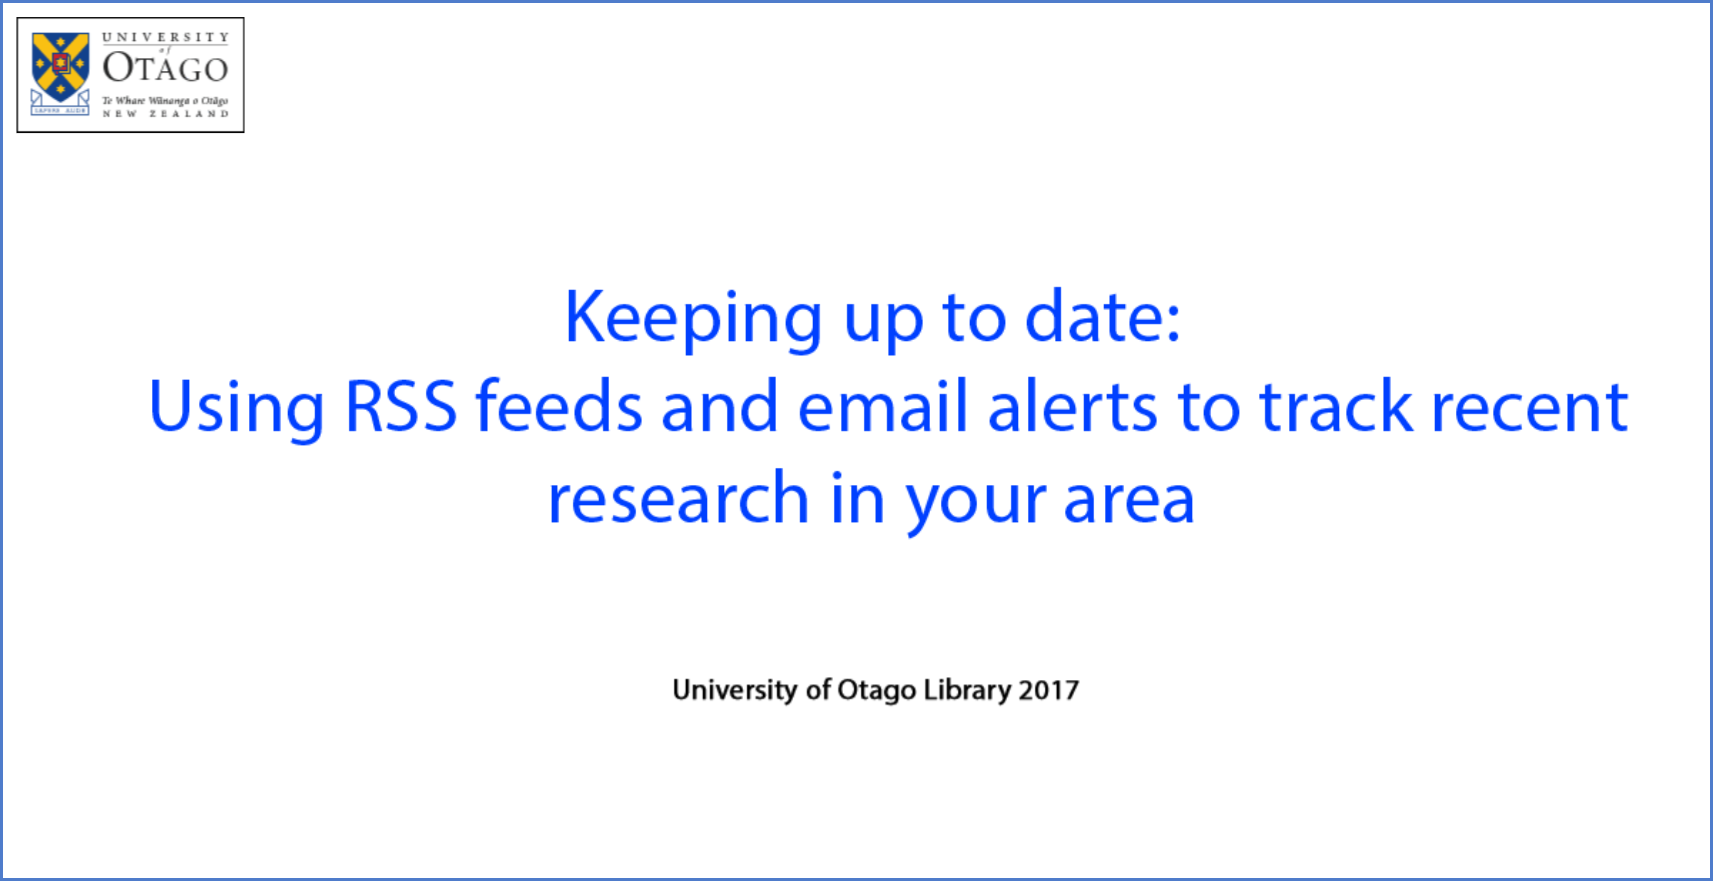 Keeping up to date | OU Library